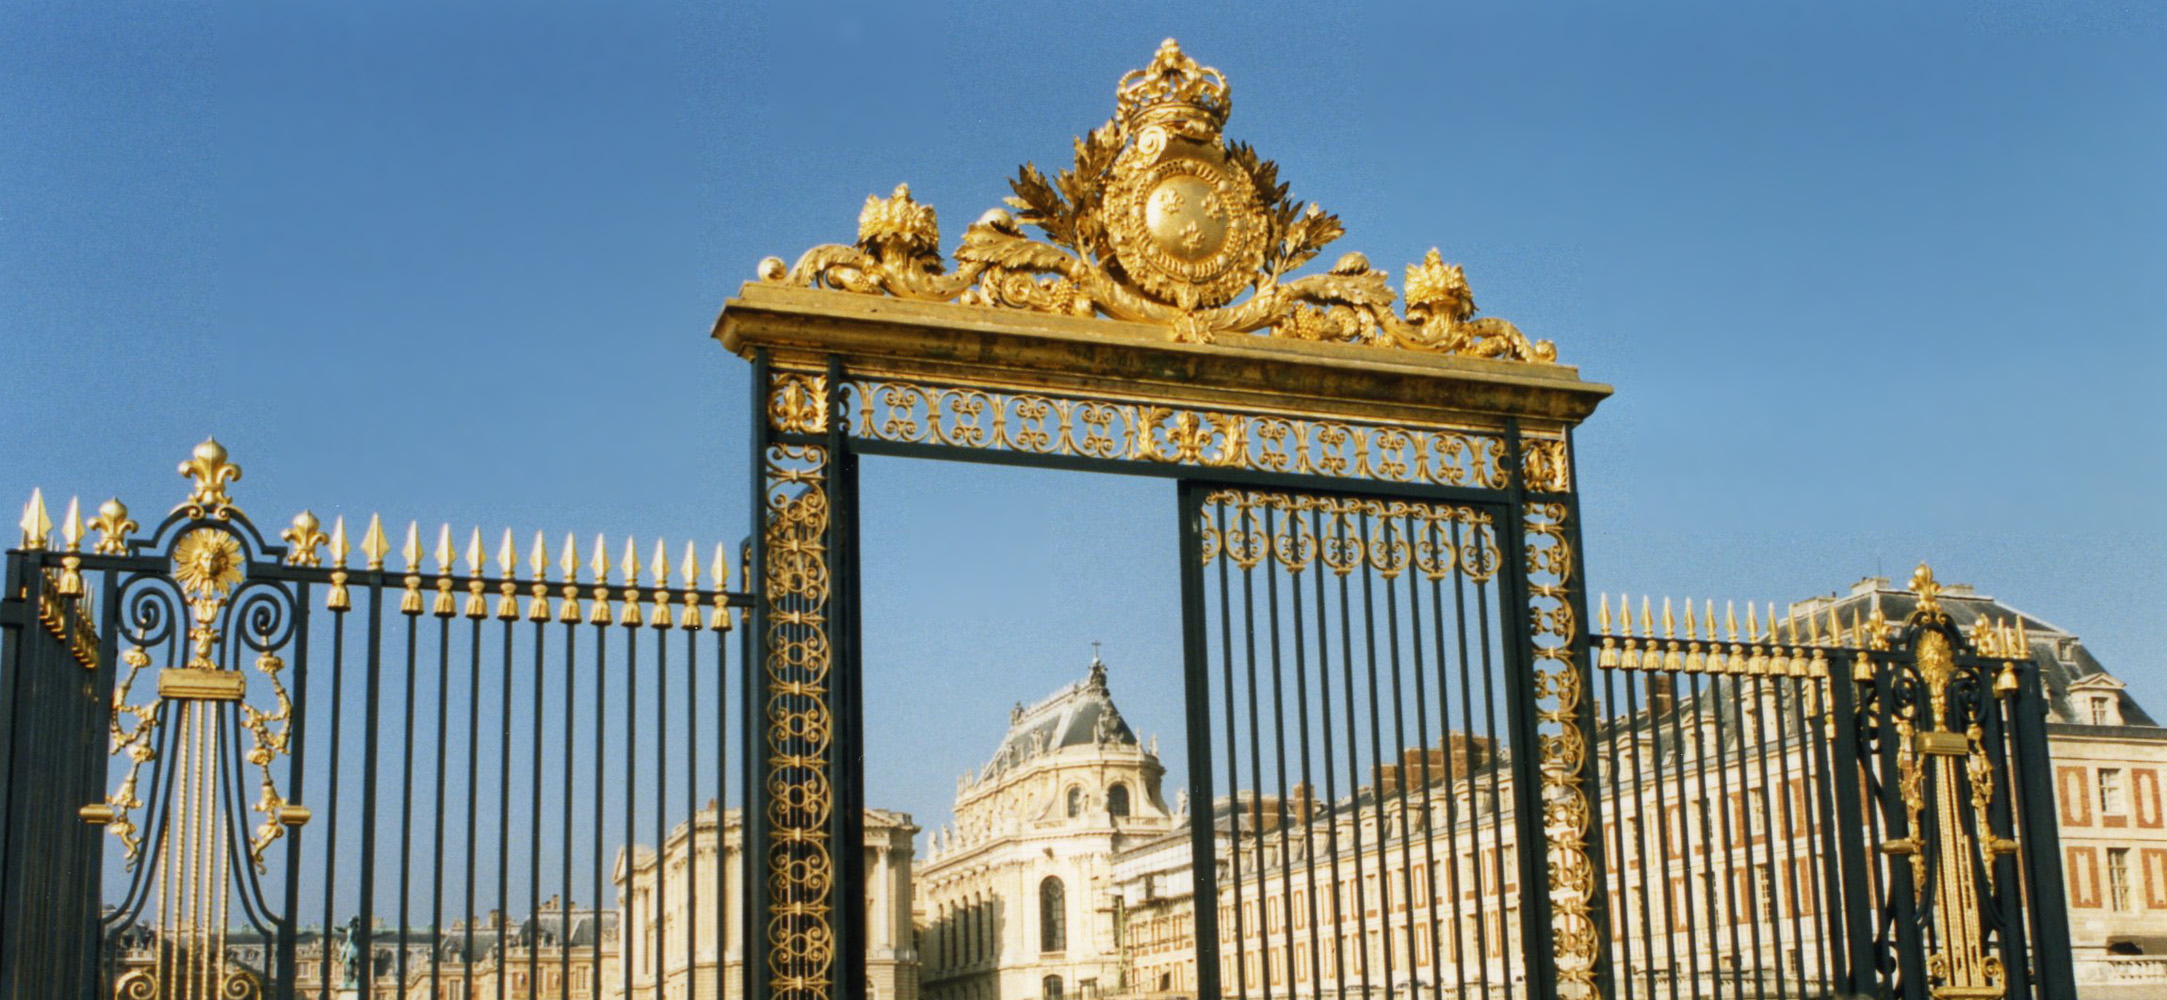 palace of versailles architecture